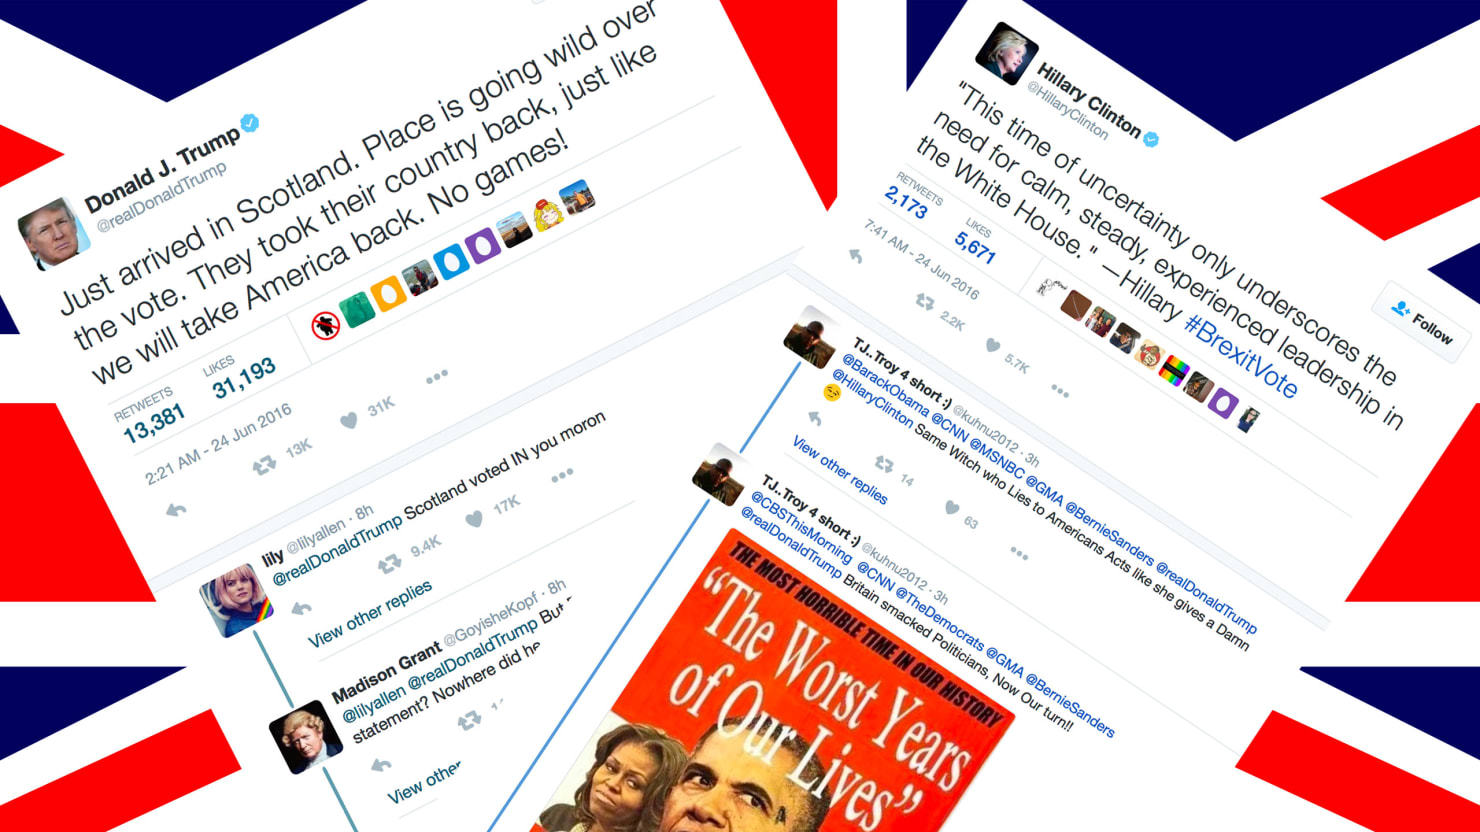 Brexit Twitter: Celebrities React To Brexit On Twitter